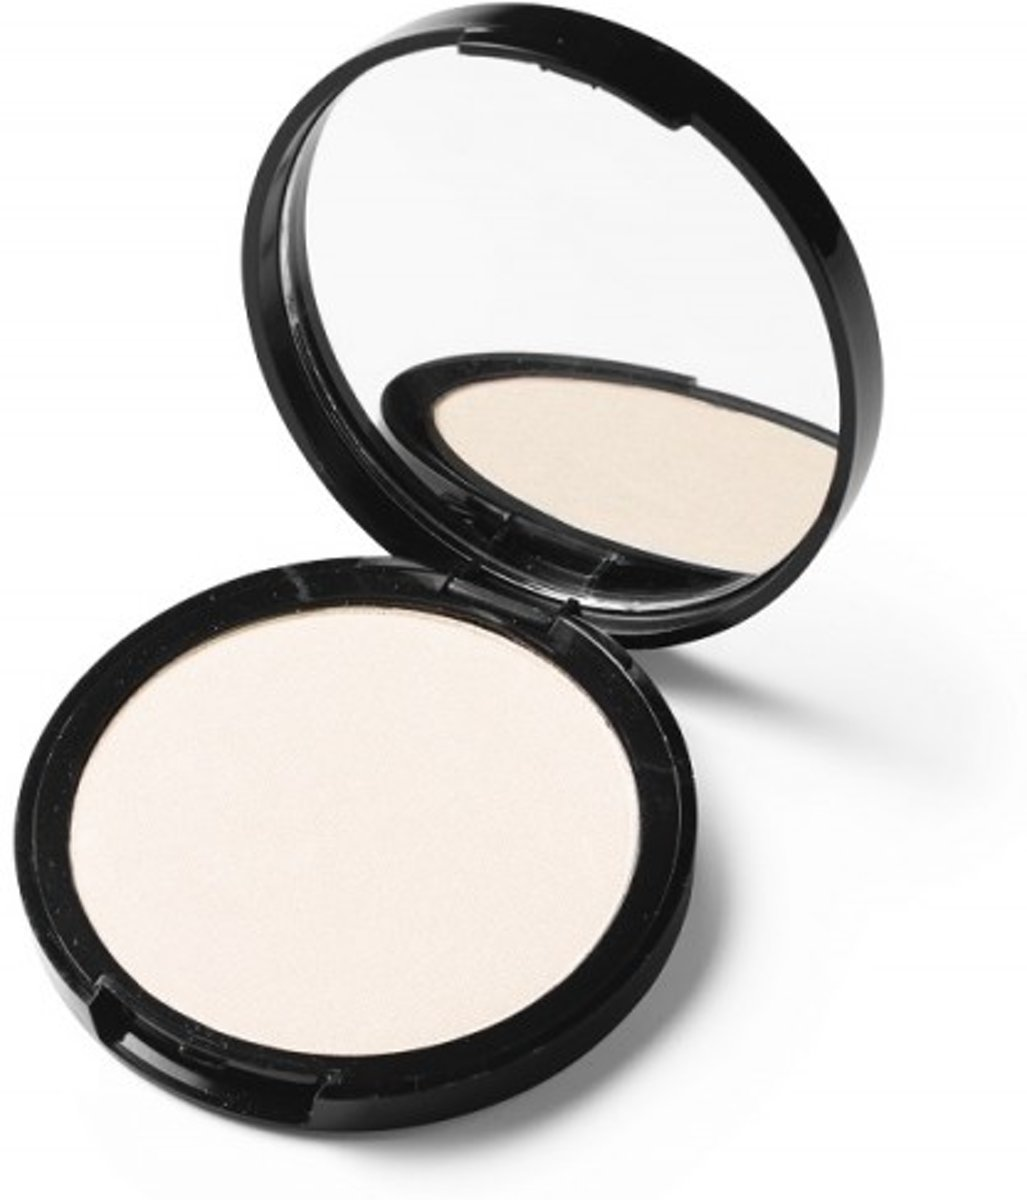 Ariane Inden Illuminating Finishing Powder - Moonbeam - Bronzingpoeder & Blush